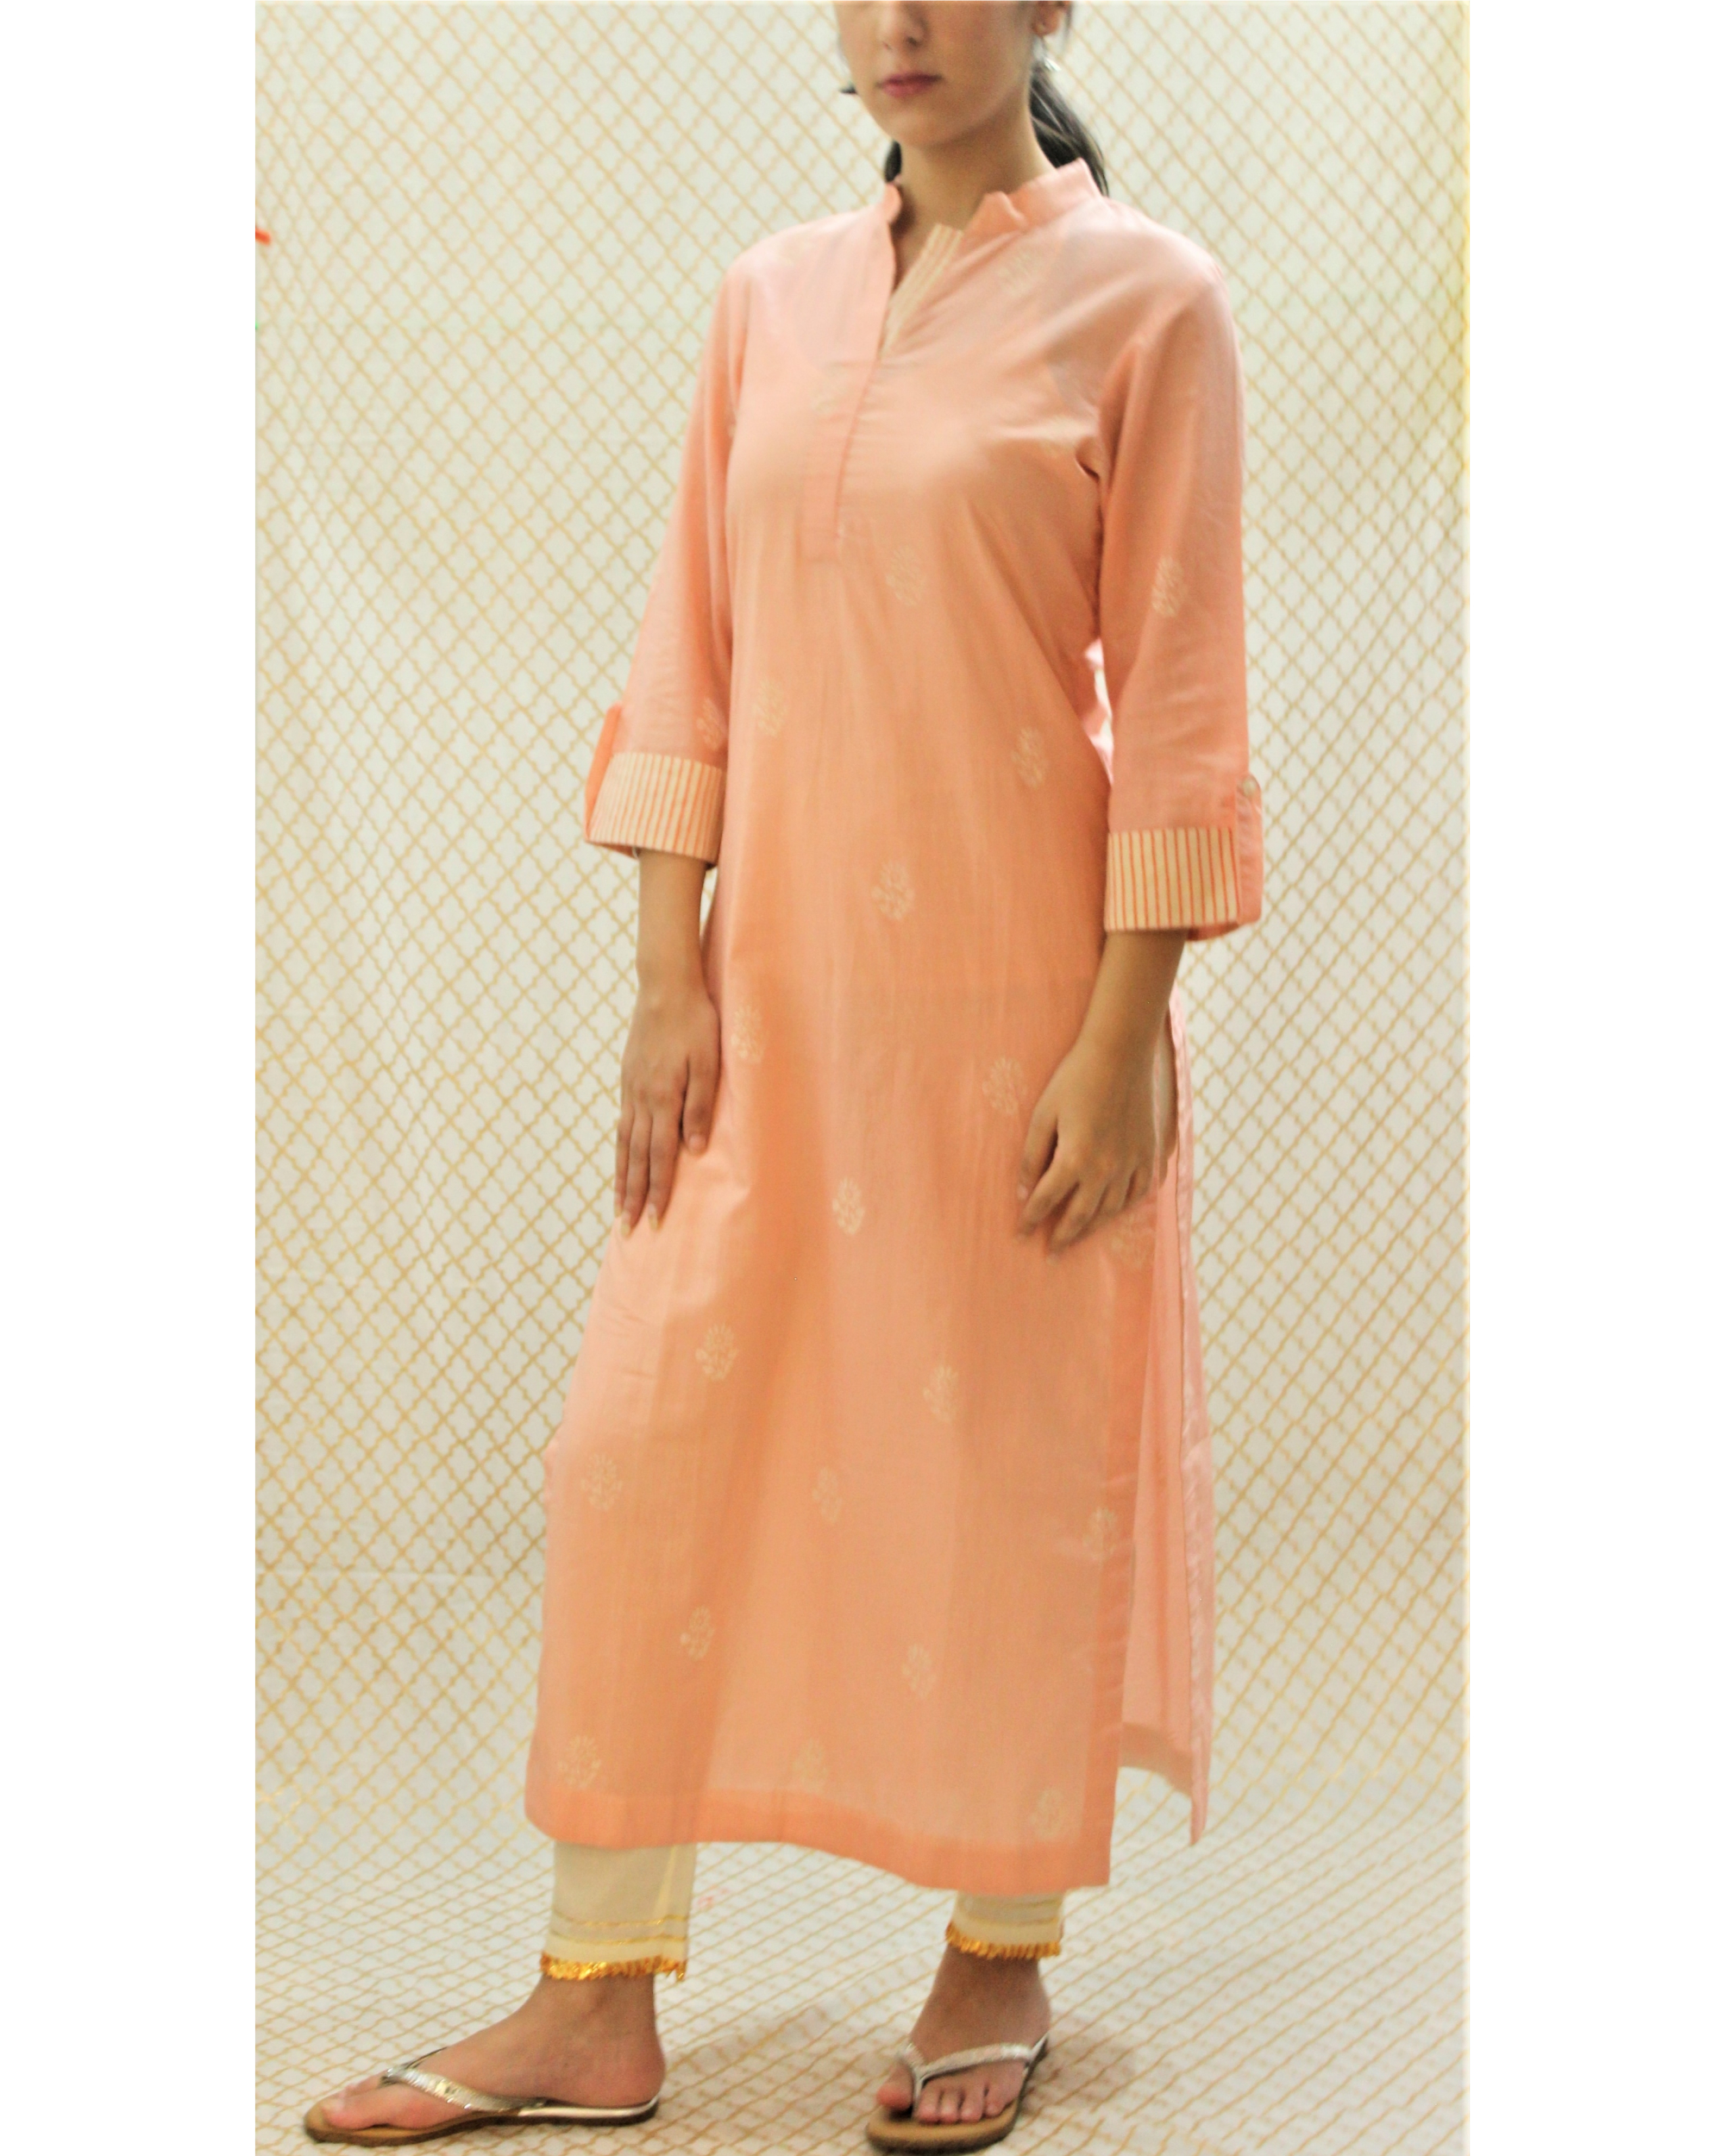 Pink kurta with striped roll up sleeves